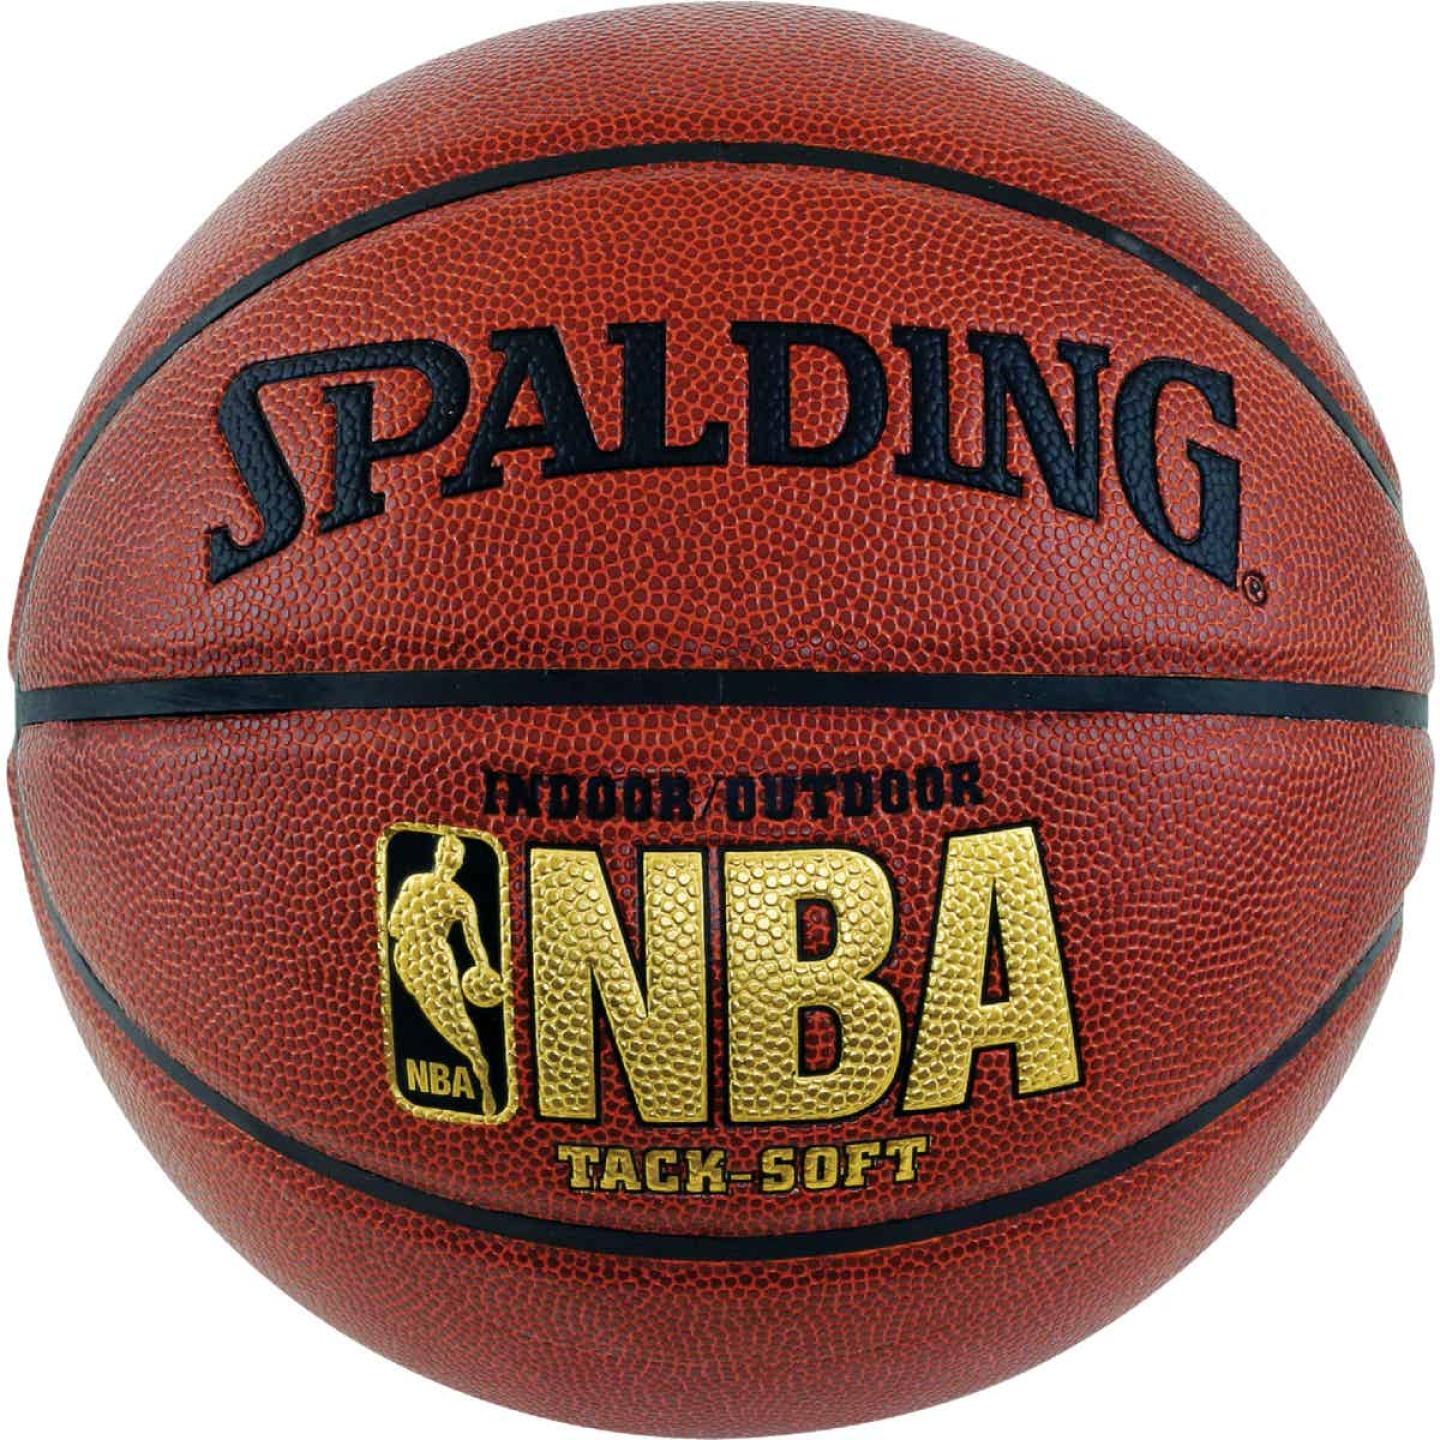 Spalding Indoor/Outdoor Tack-Soft Basketball, Official Size Image 1